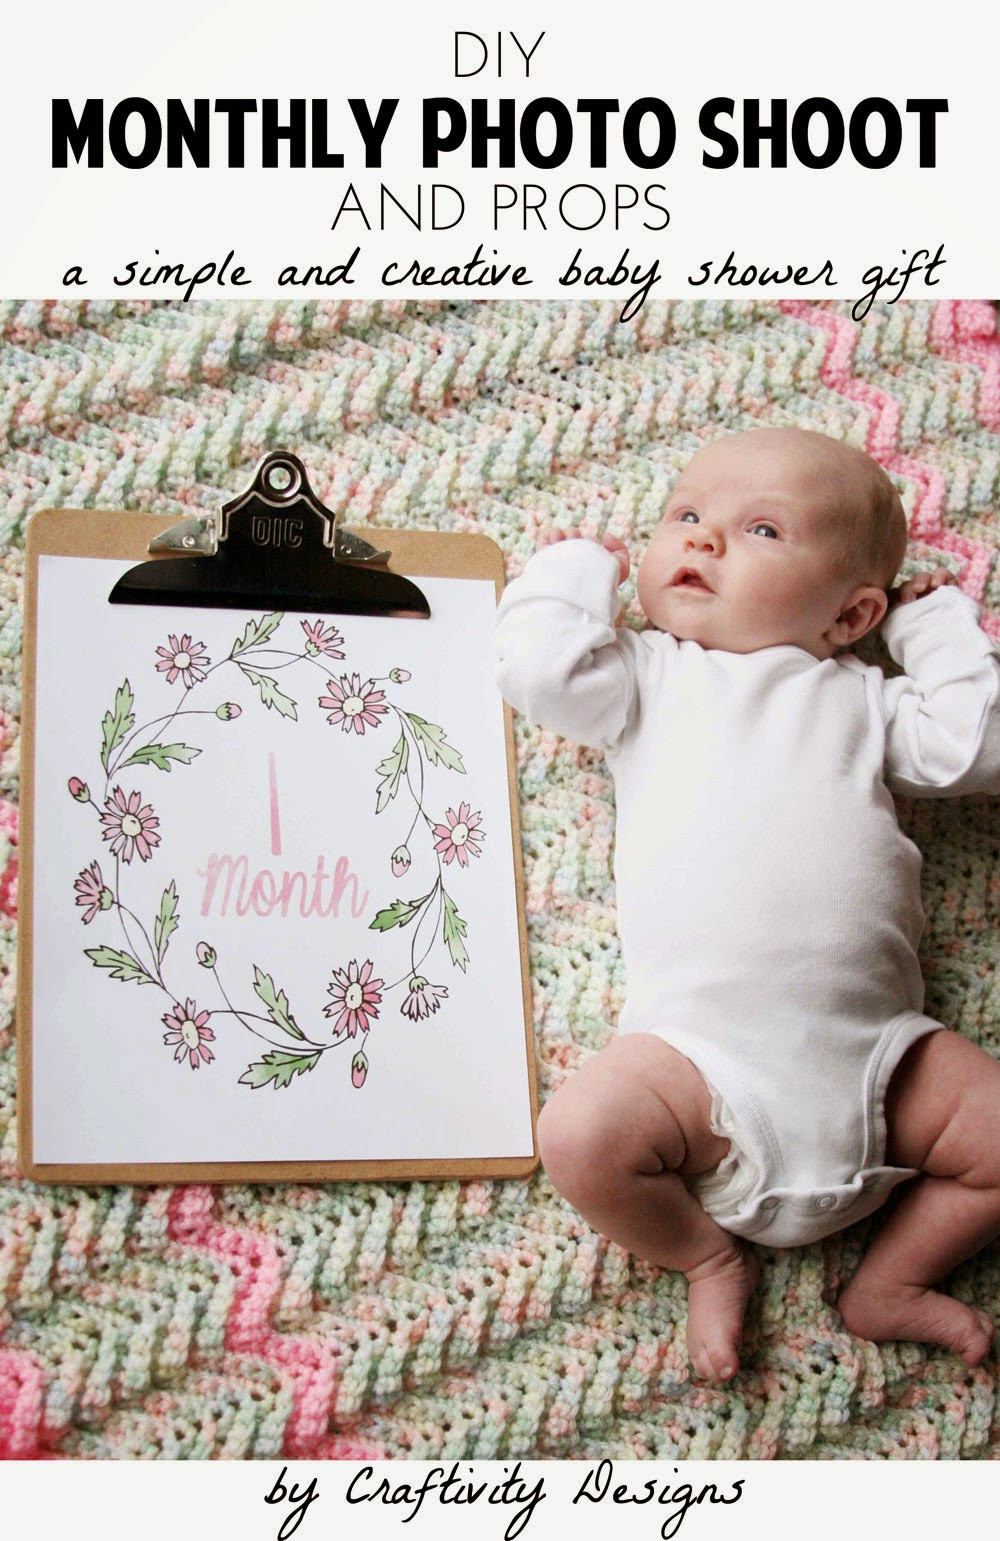 Best ideas about DIY Baby Photo Shoot . Save or Pin DIY Monthly Baby s – Craftivity Designs Now.